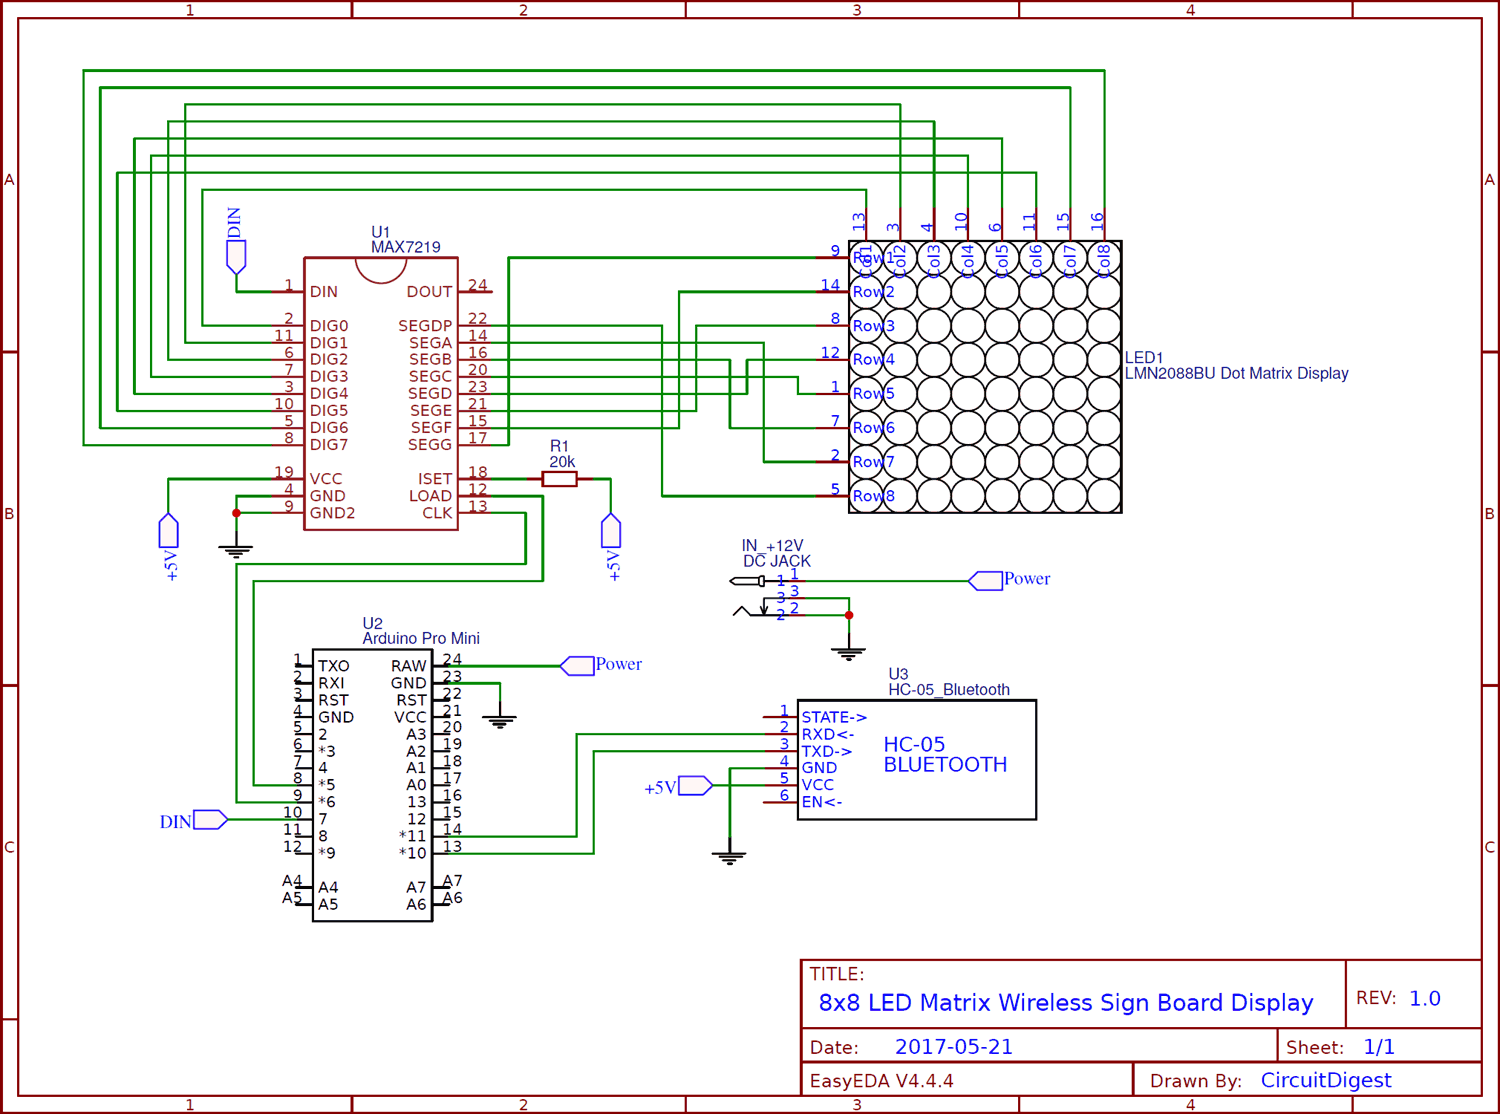 small resolution of circuit diagram for bluetooth controlled 8x8 led wireless sign board display using arduino